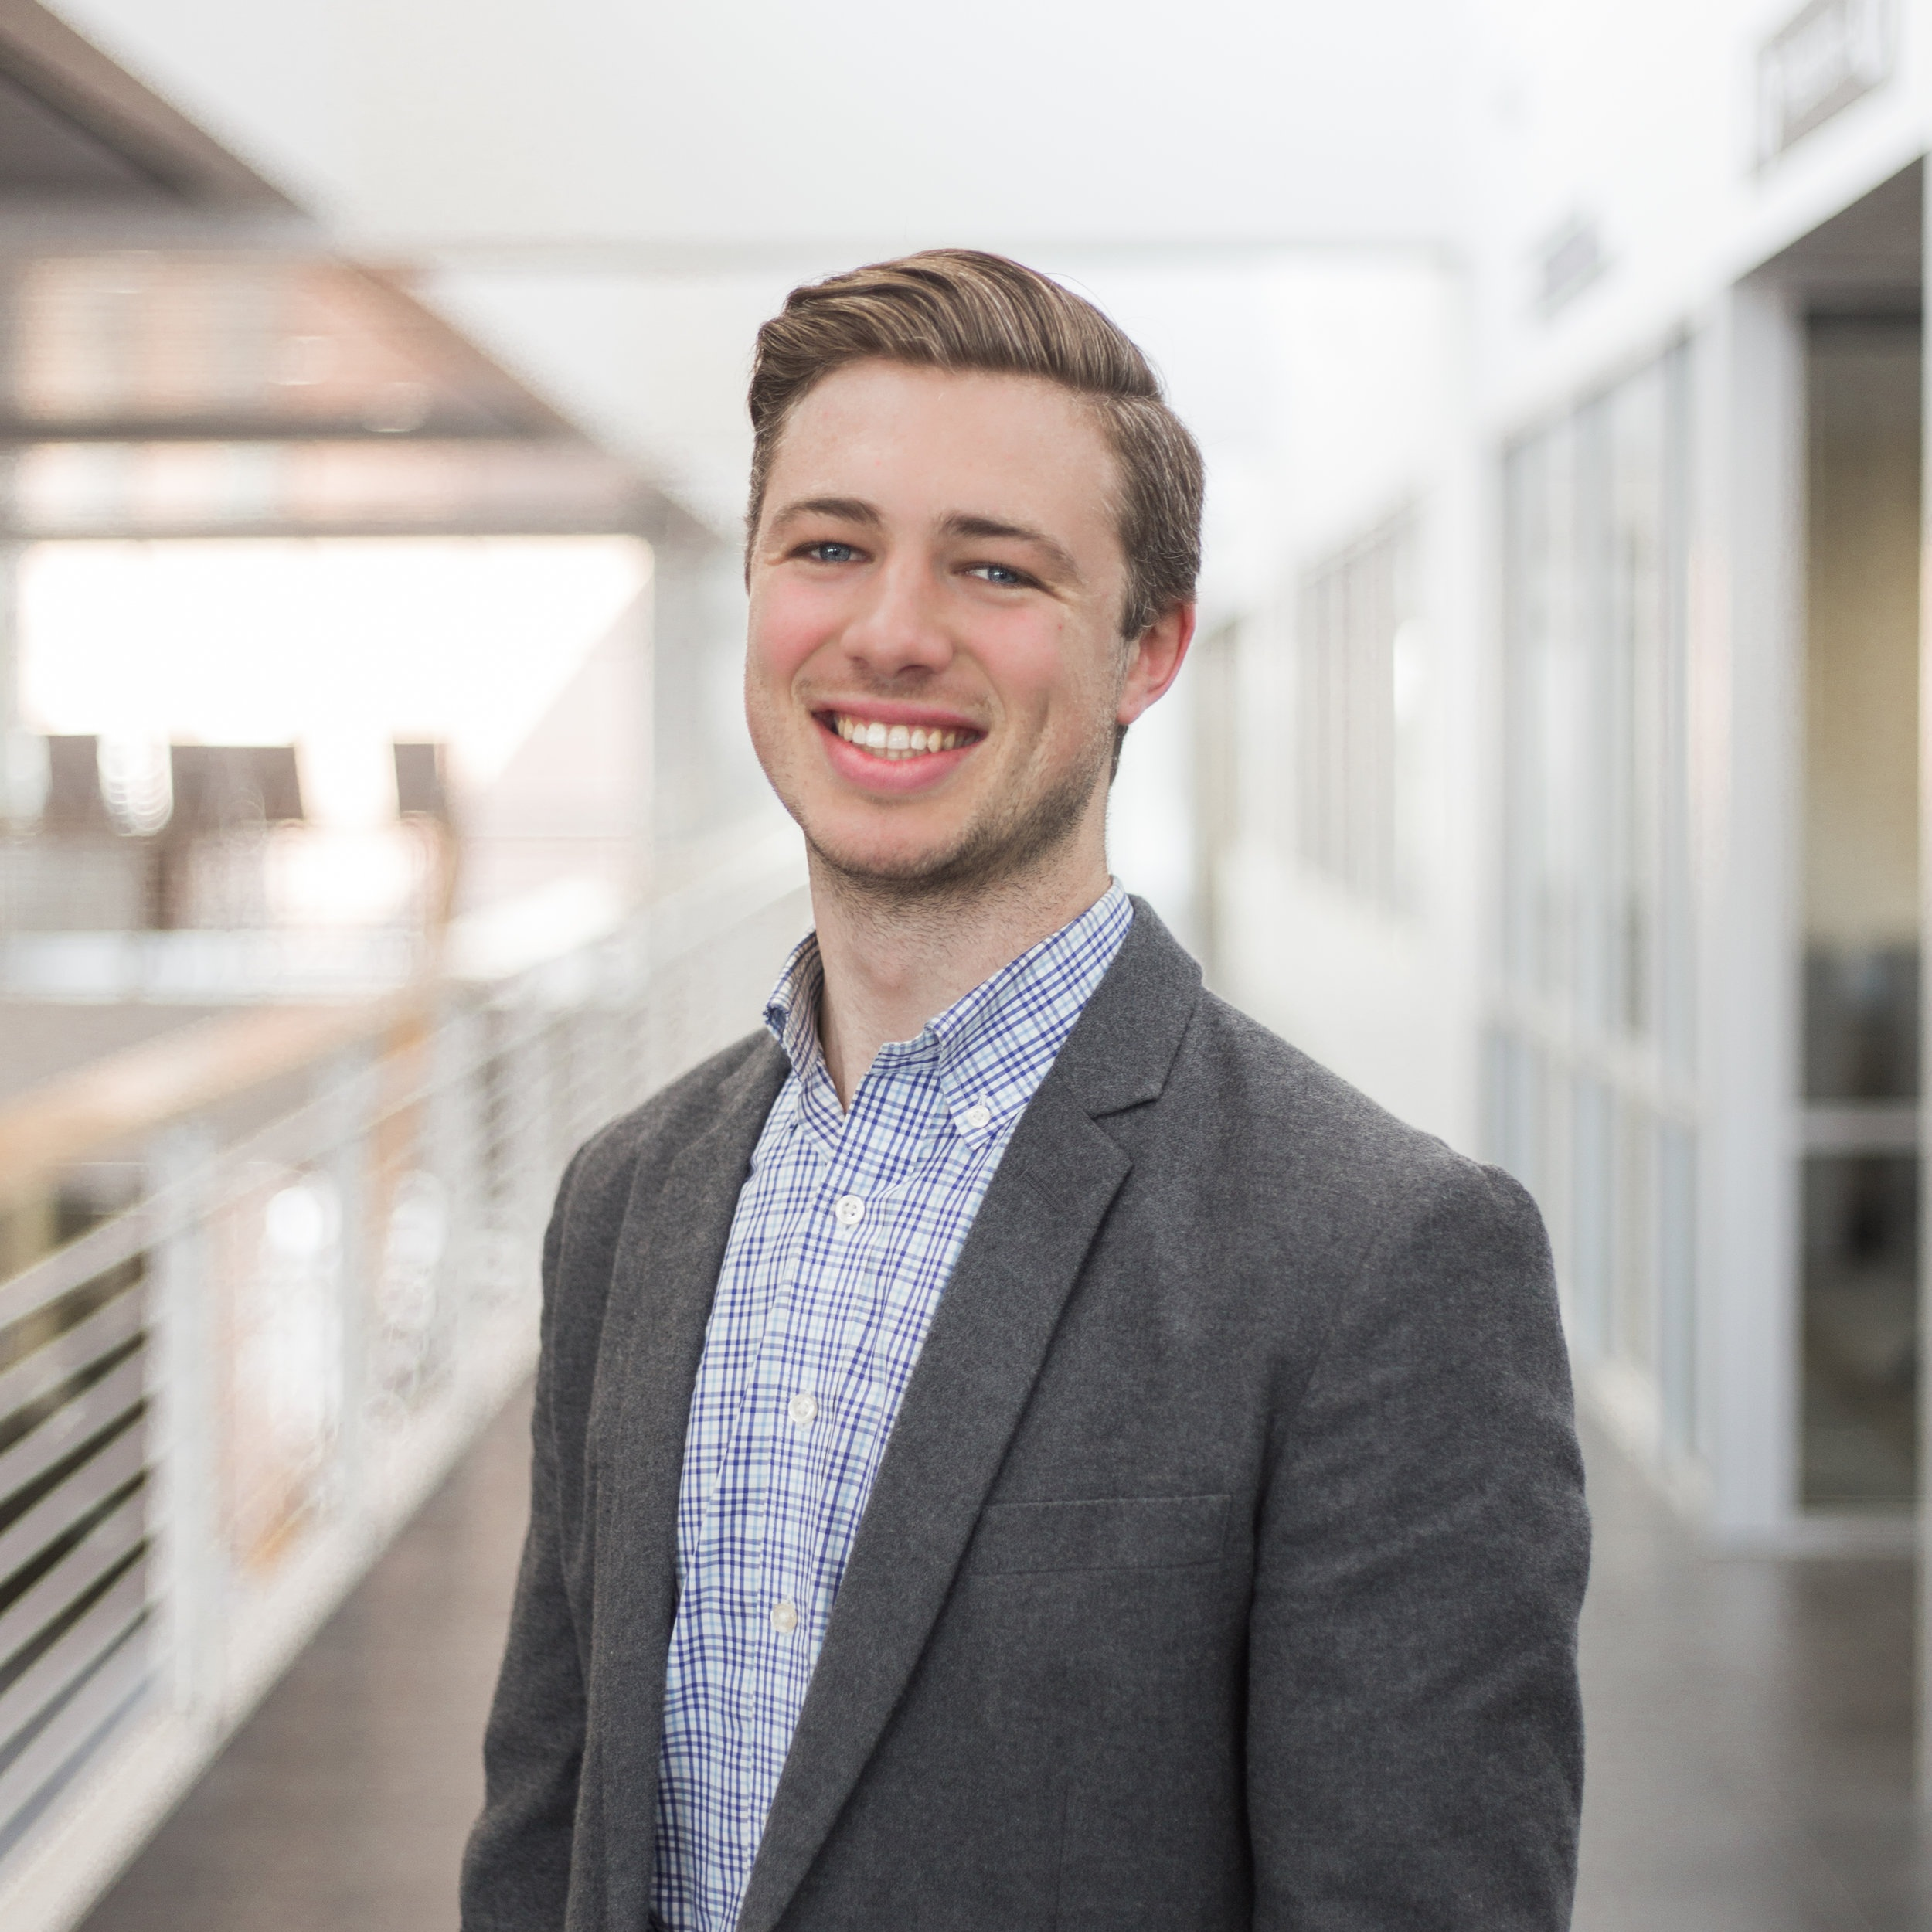 Benjamin Krelitz - Staff Consultant, EYBSB '19. Finance and Entrepreneurial Management